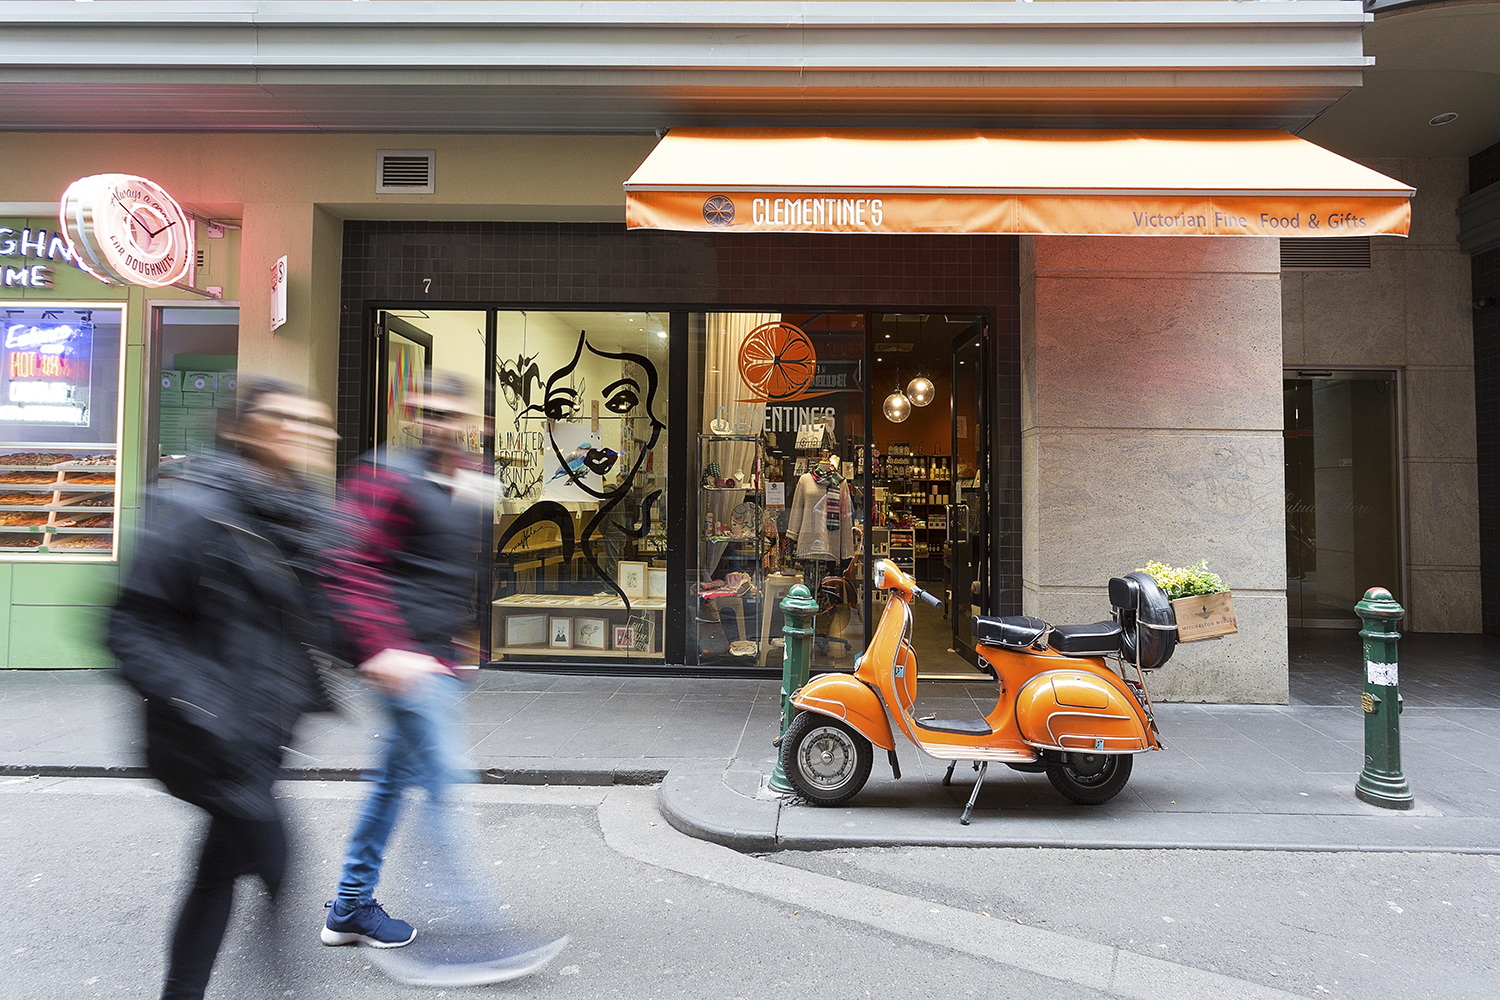 Clementines gift shop on Degraves Street, Melbourne